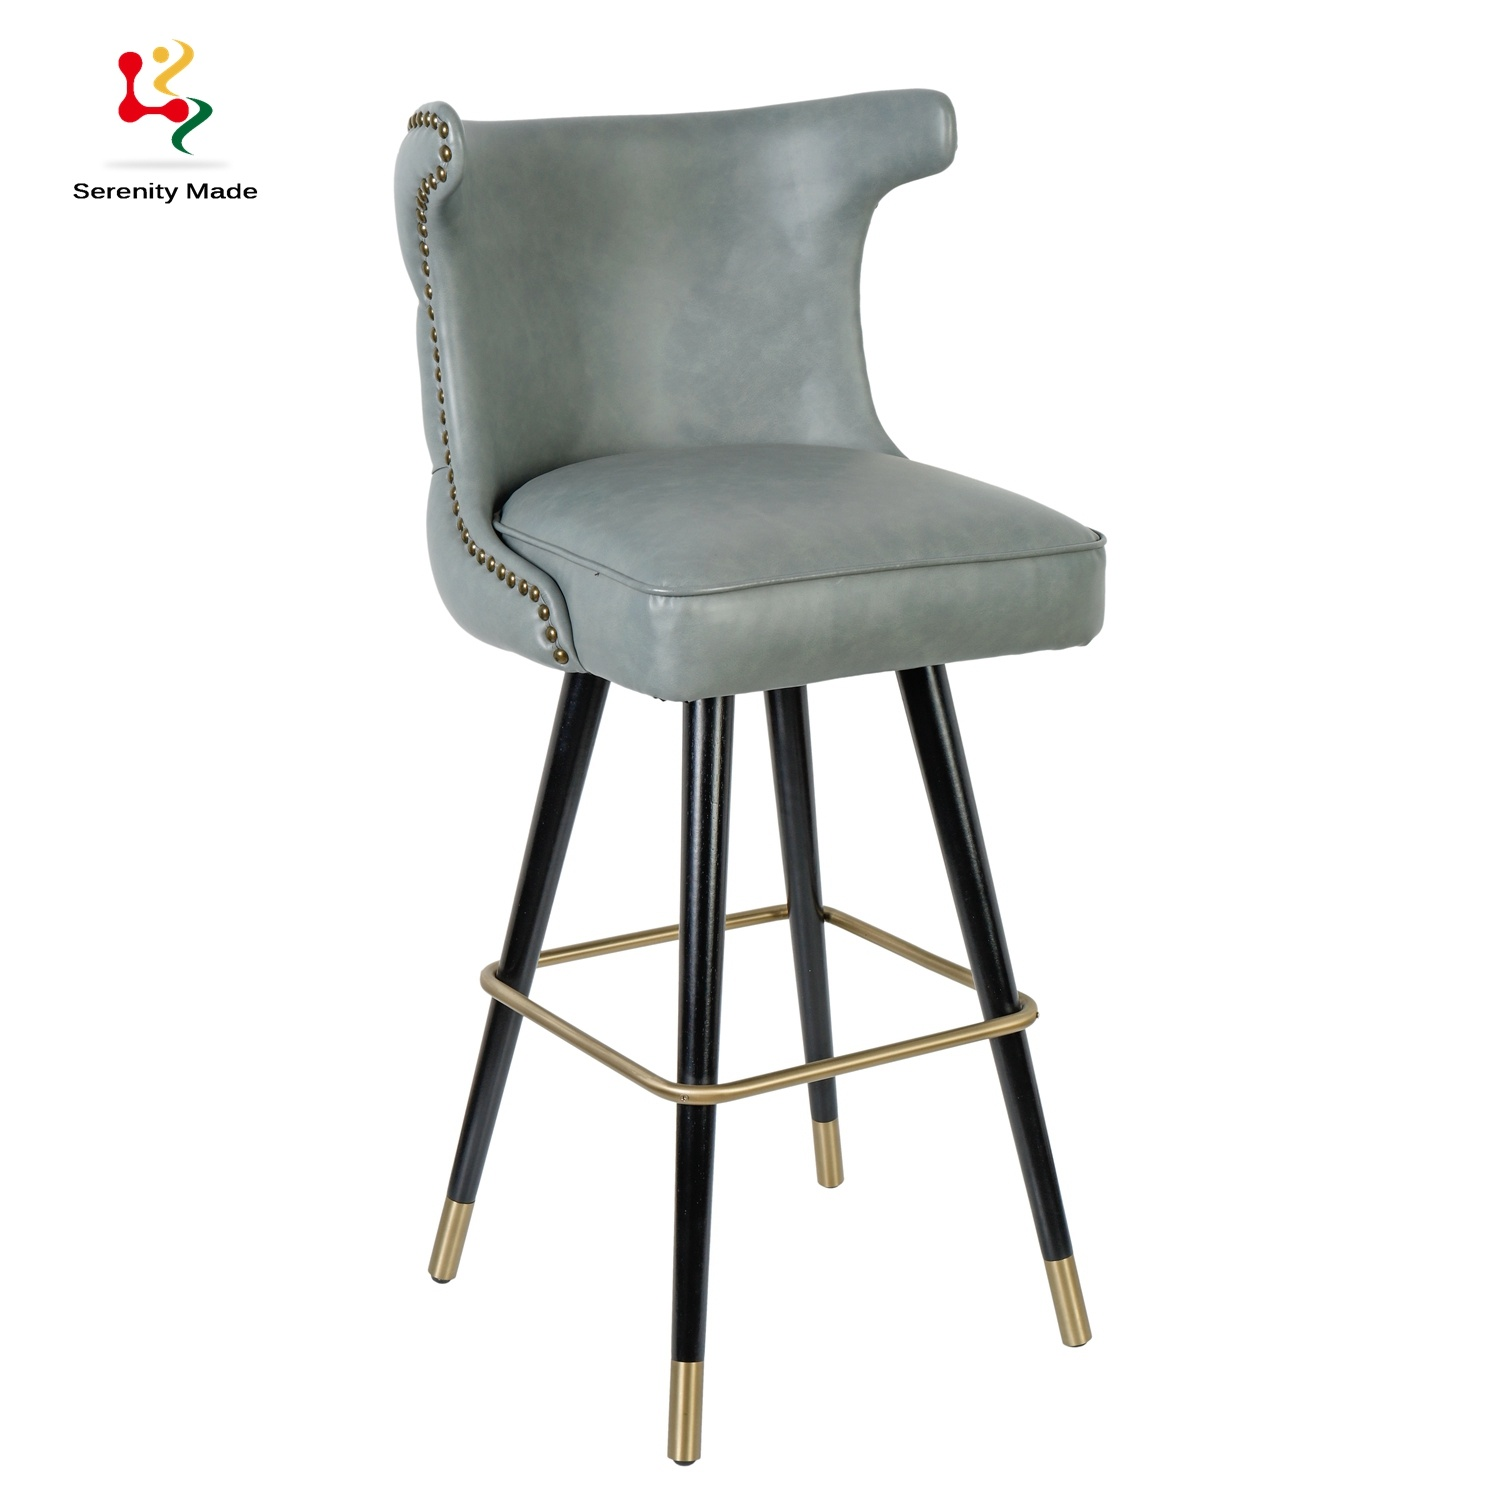 China High Quality Leather Upholstered Bar Stool Metal Leg ...